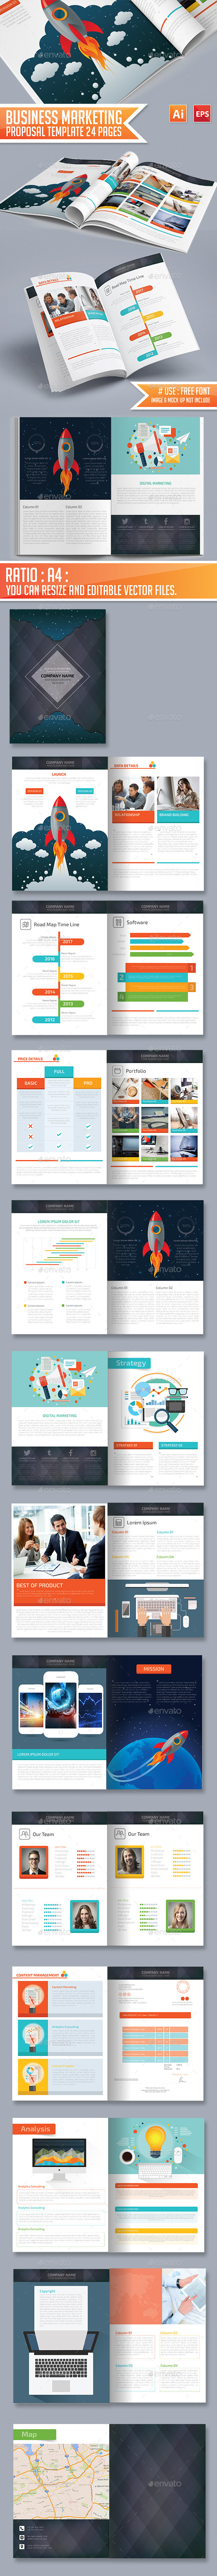 Business Marketing Proposal Template 24 Pages - Informational Brochures